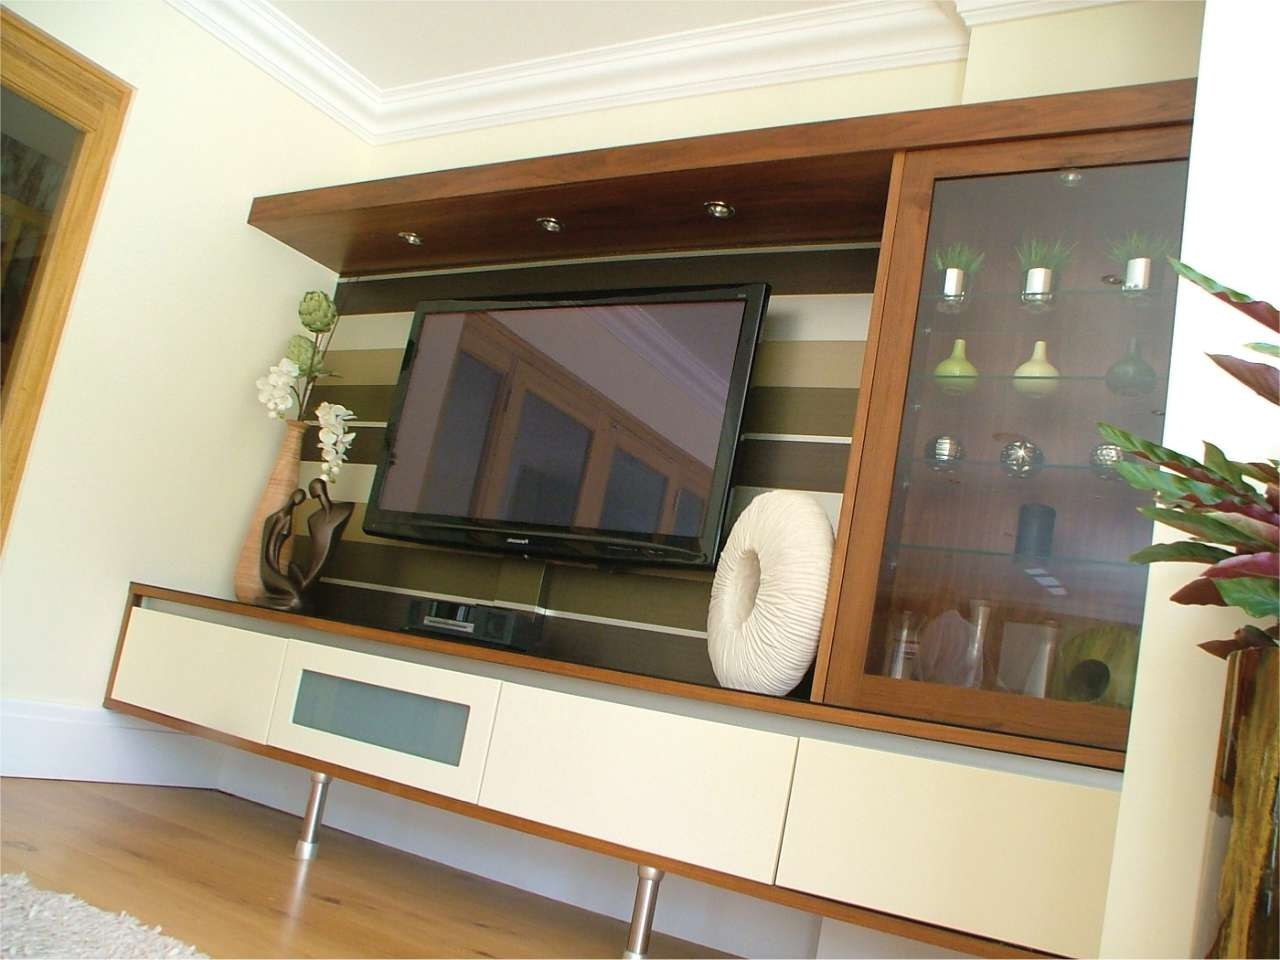 Bespoke Tv Cabinet | Choice Interiors For Bespoke Tv Cabinets (View 2 of 20)